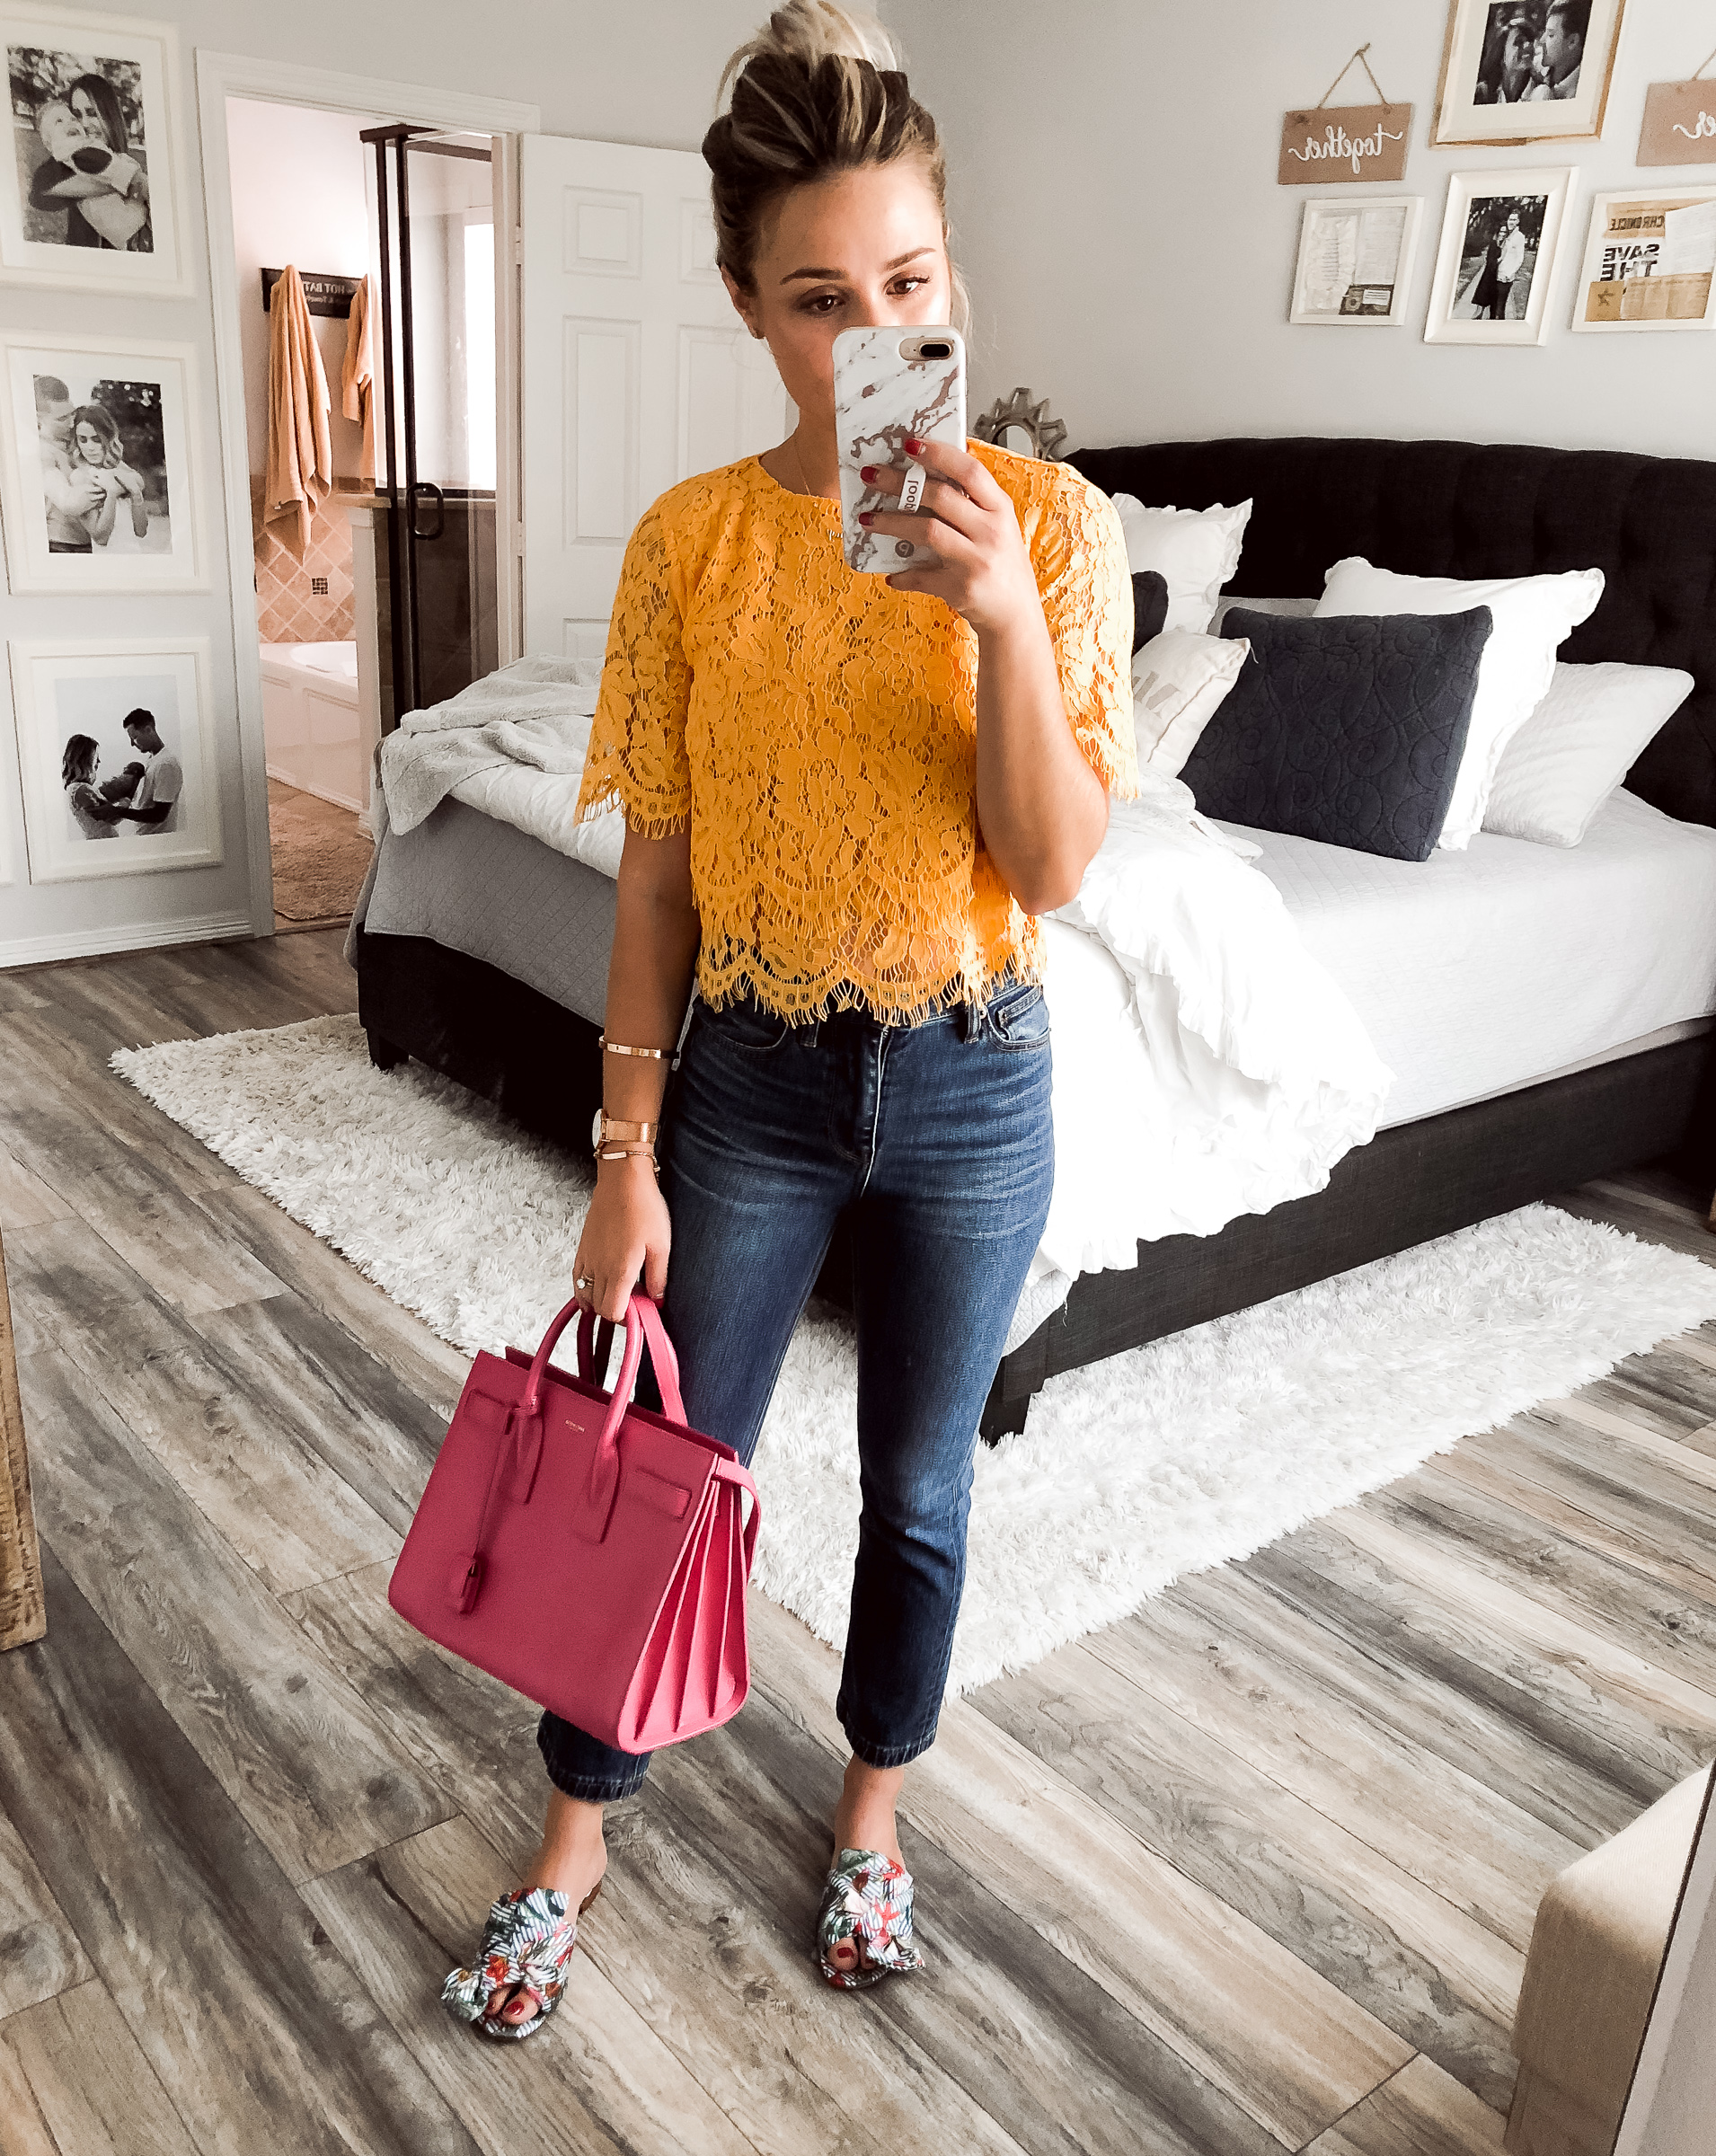 Houston fashion blogger Uptown with Elly Brown wears a yellow lace top